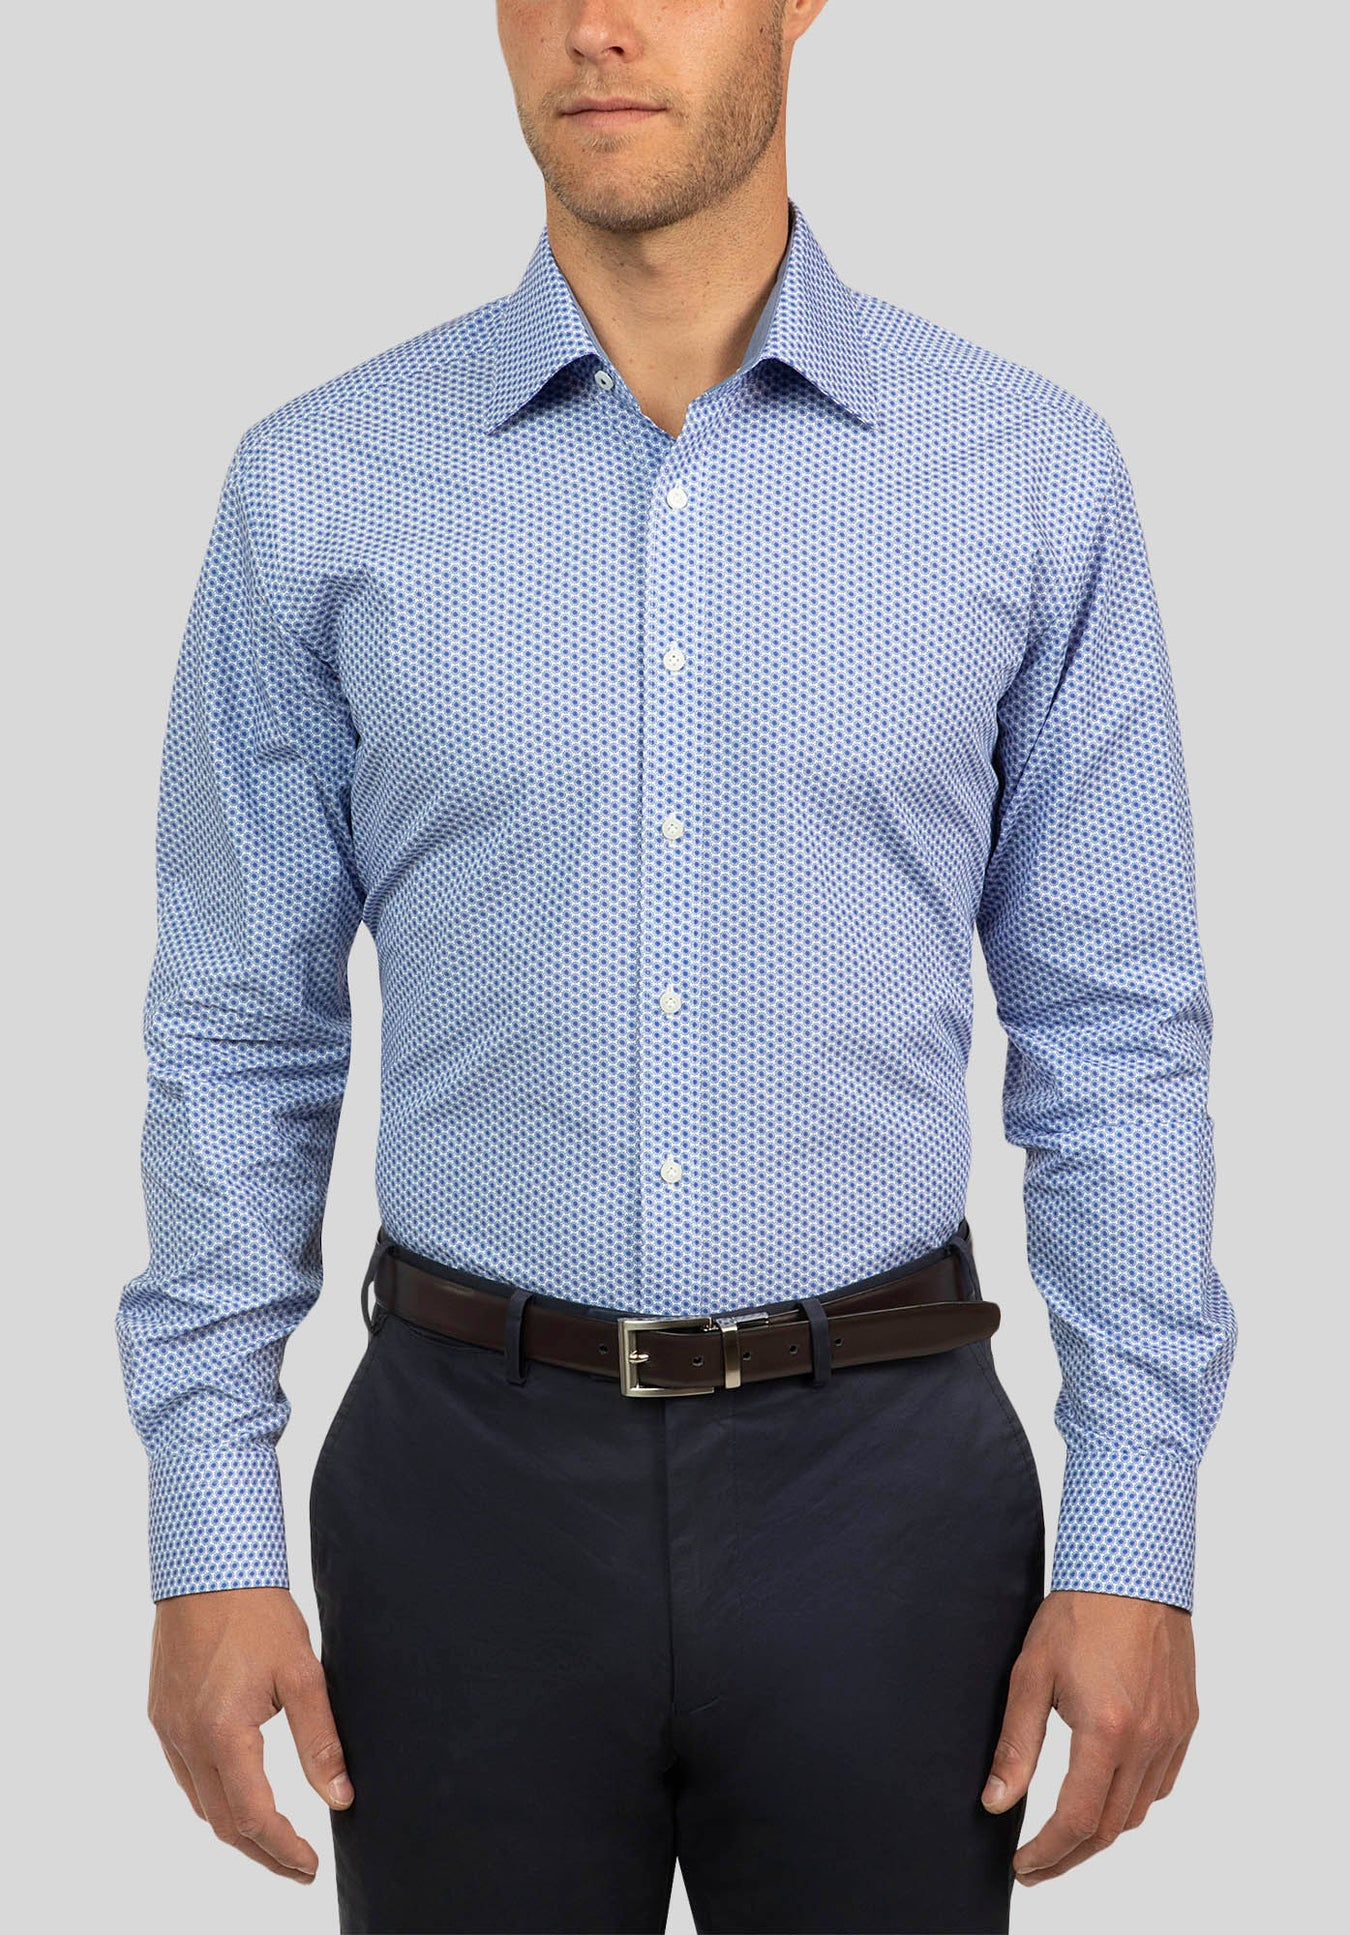 CARLTON SHIRT FCJ347 - Blue